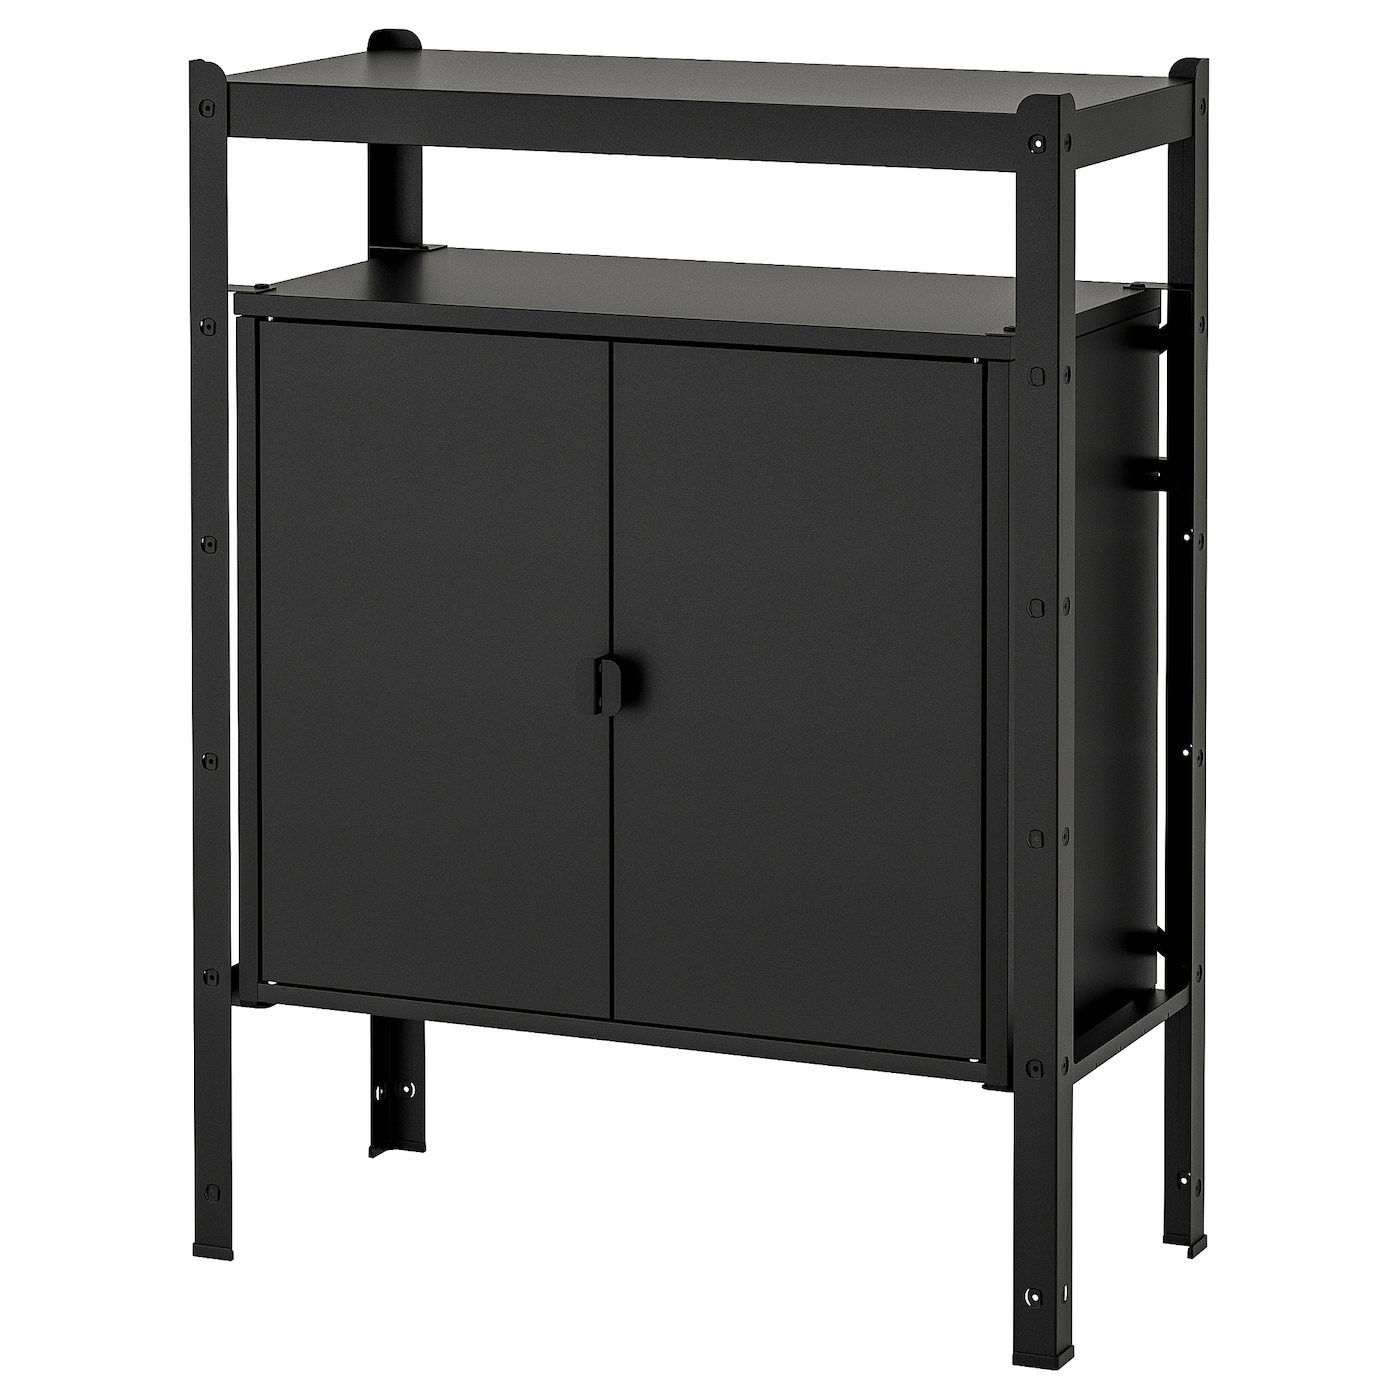 Bror Shelving Unit With Cabinets Black 33 1 2x15 3 4x43 1 4 Ikea